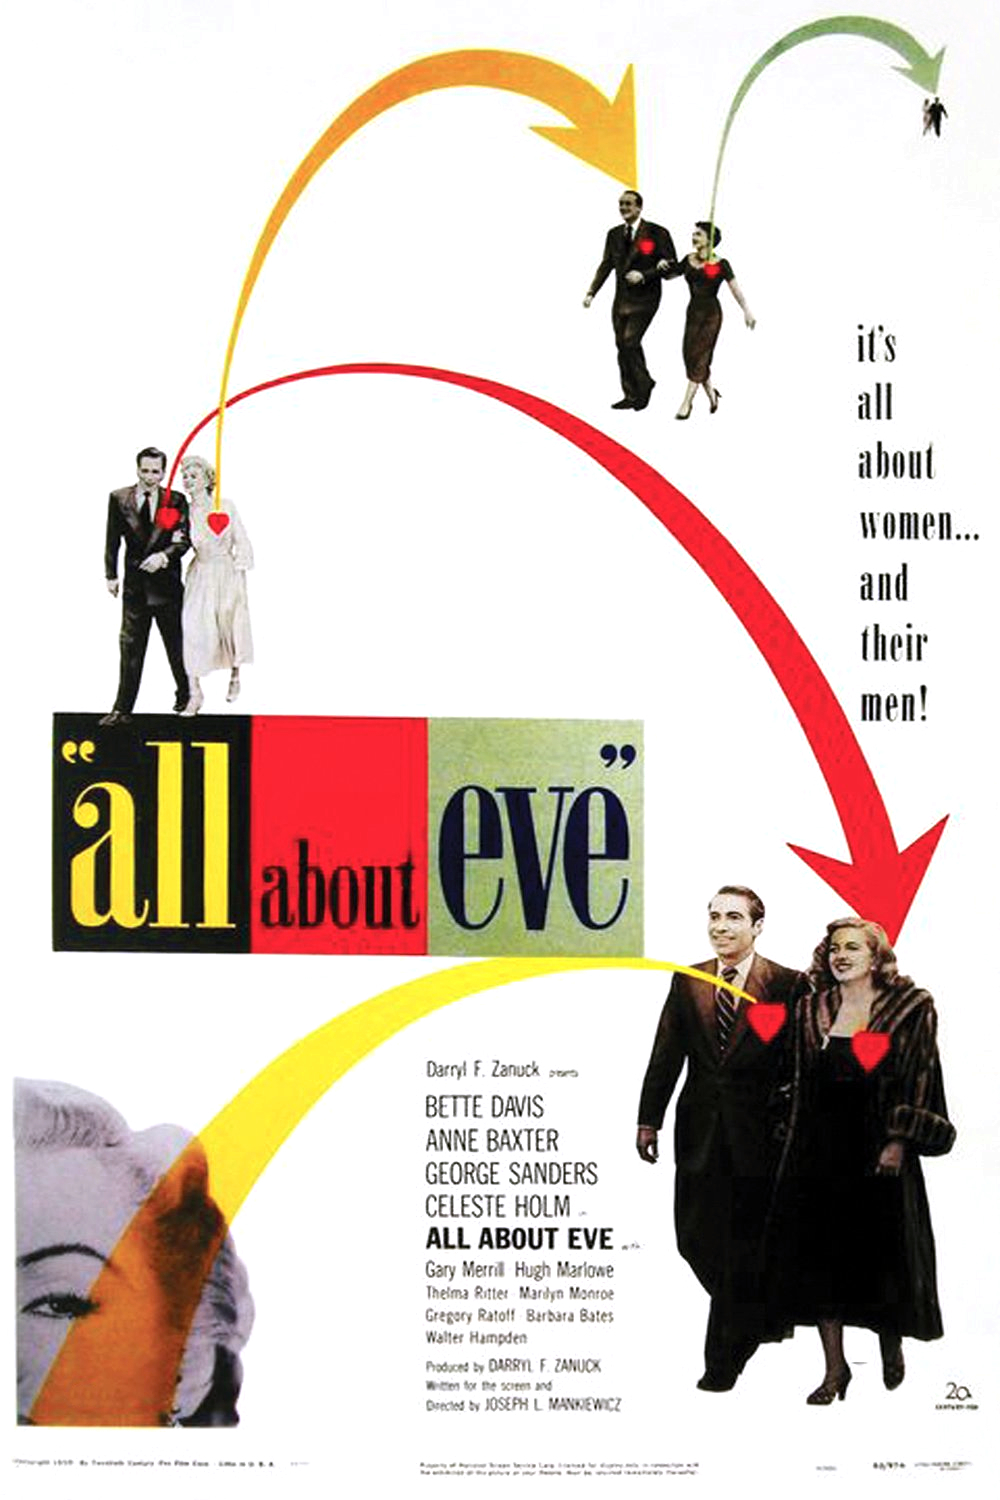 Day 6: All About Eve  - Shoutout to the Prytania Theater for playing this in their awesome theater this weekend! A Hollywood classic about the lengths an adoring fan will go to to take her hero's place!